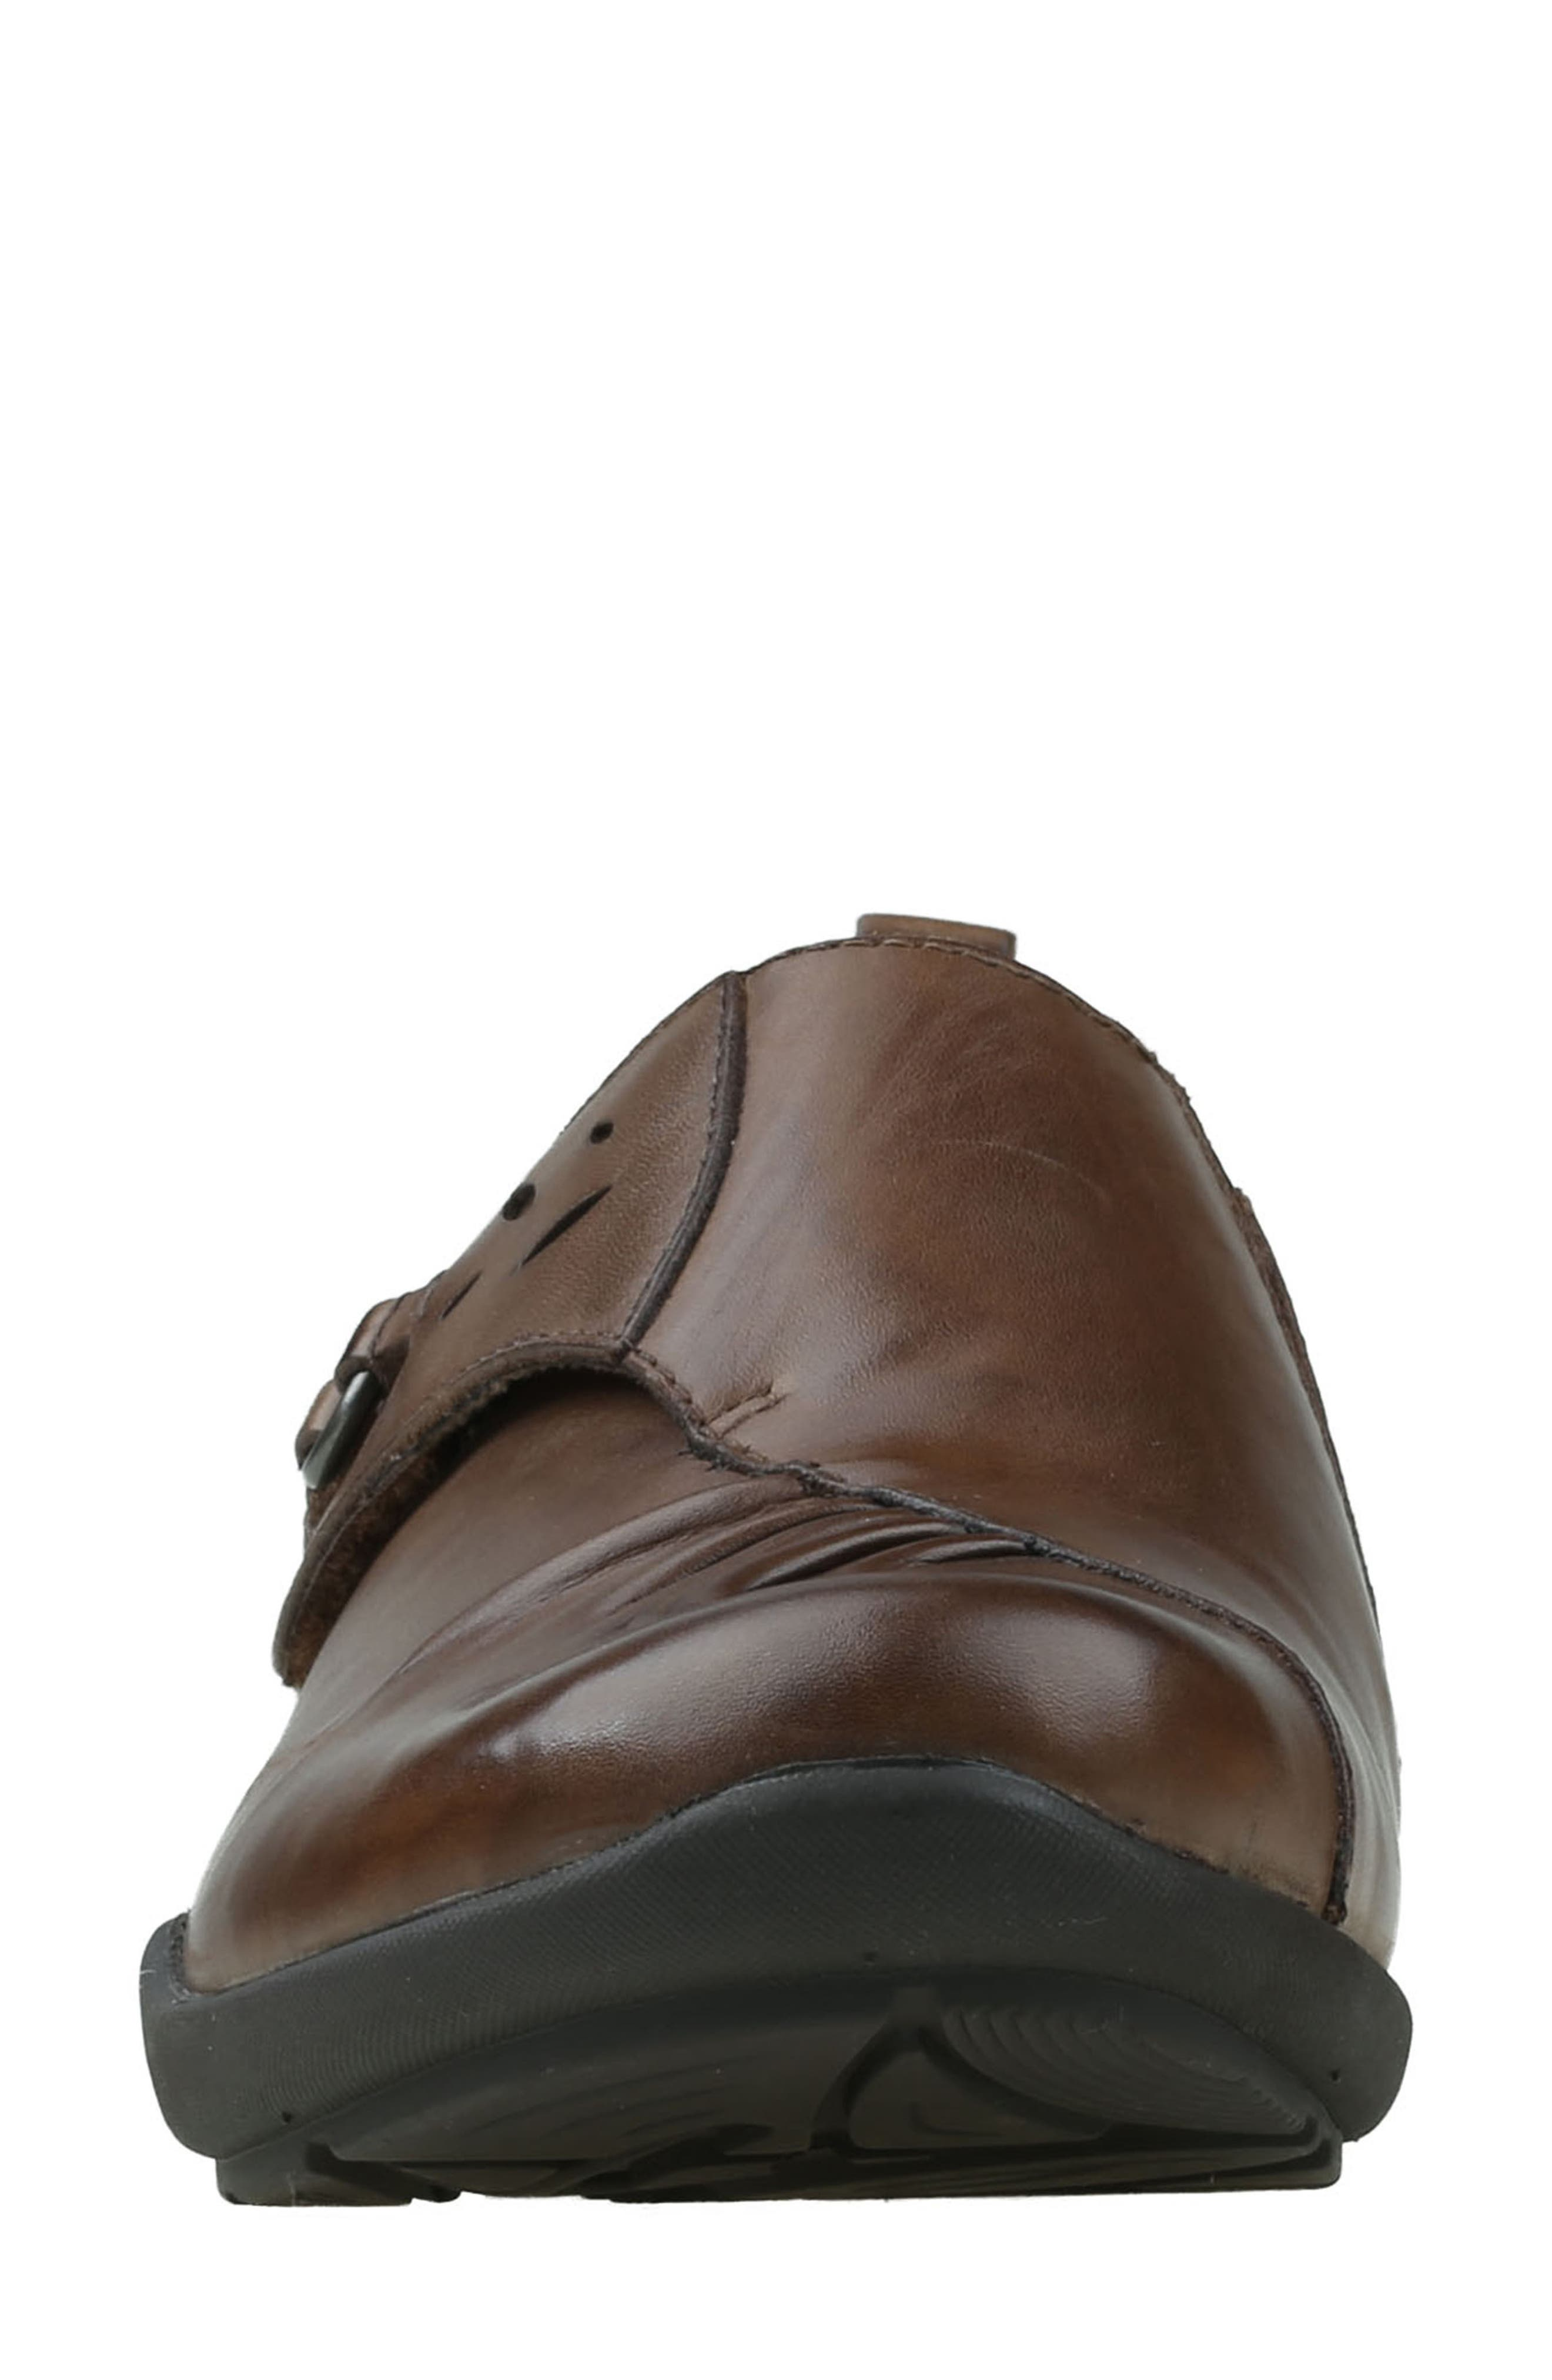 Amity Loafer,                             Alternate thumbnail 8, color,